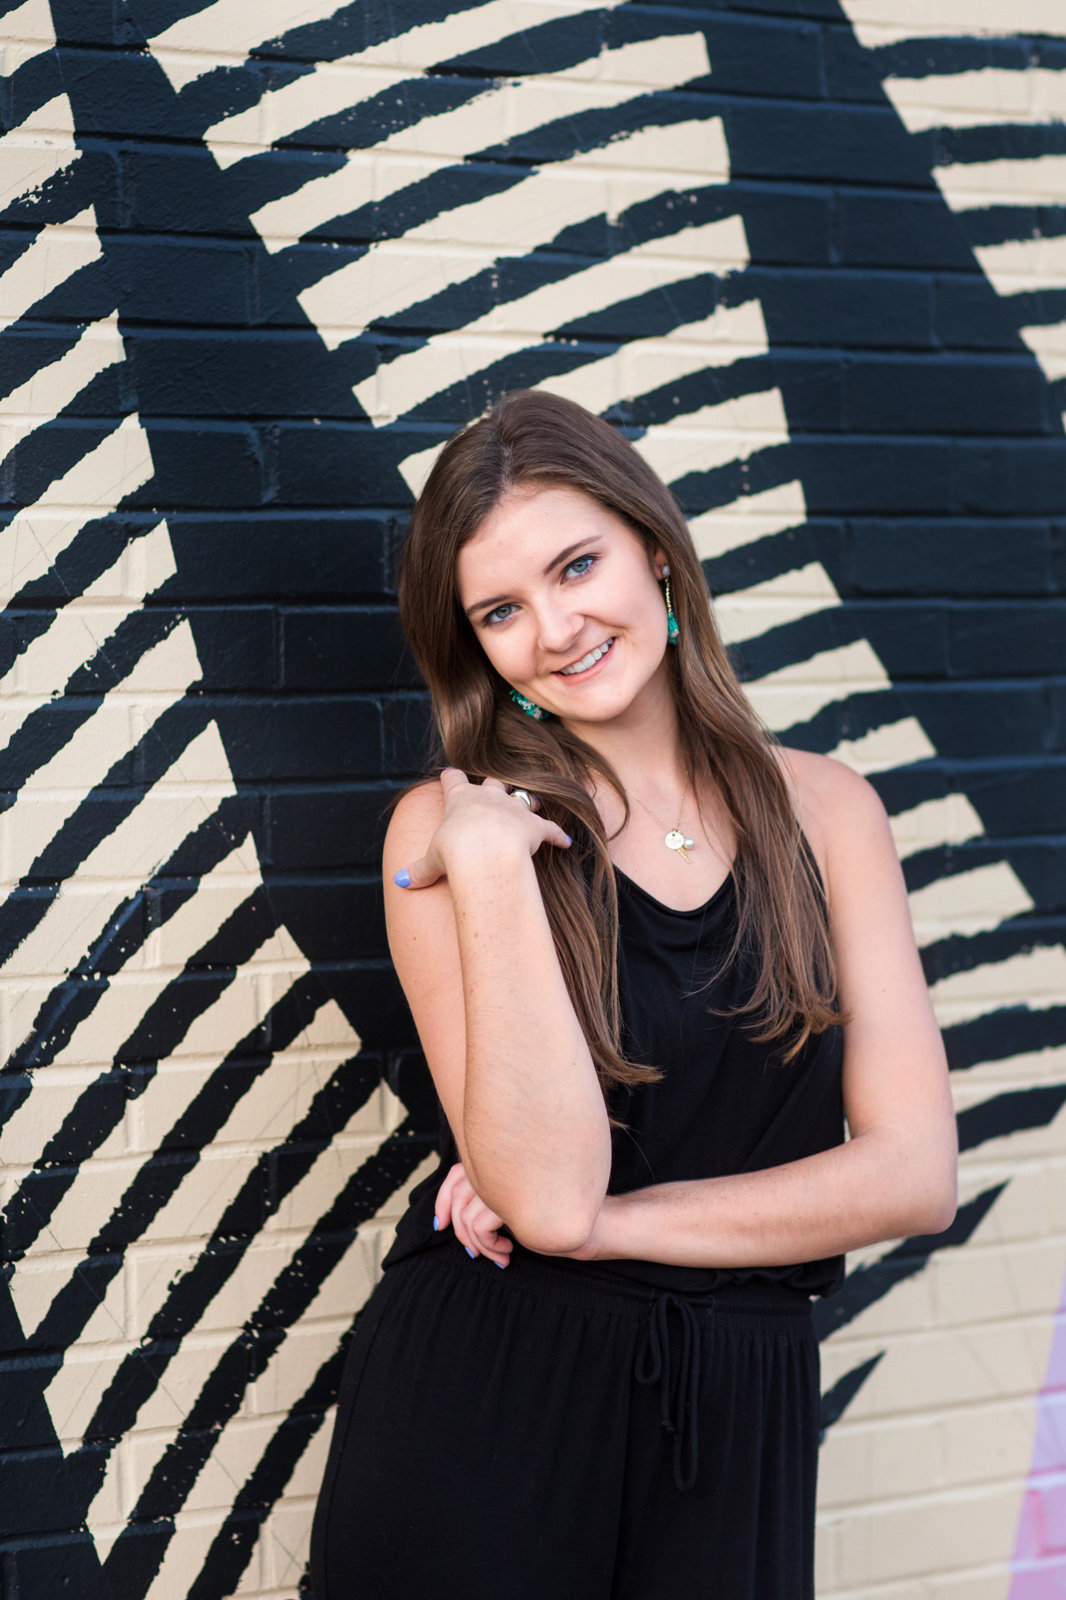 L Photographie high school senior photos midtown St. Louis 61